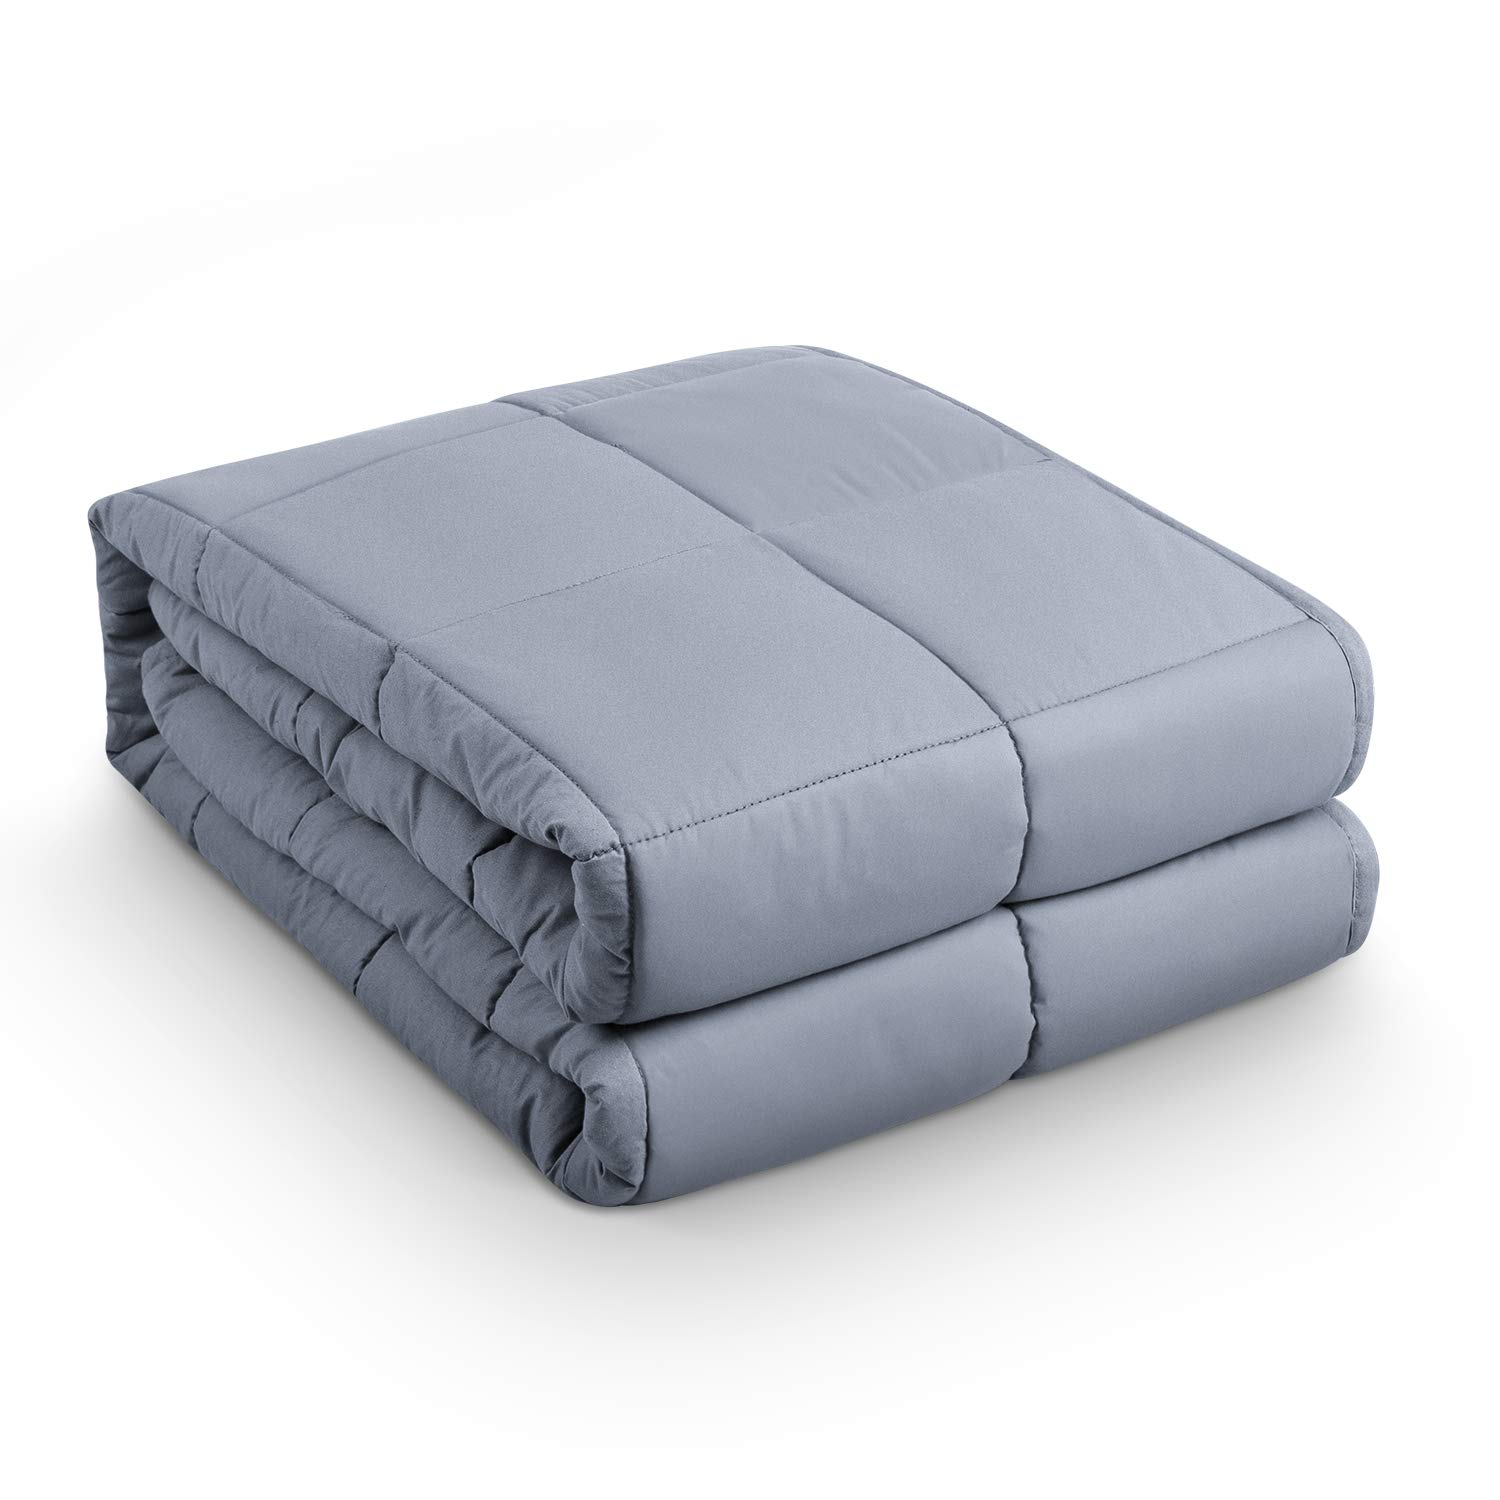 BEASEN Weighted Blanket (15 lbs,60''x80'') for Adult 120-180 lbs Individual,|Natural Calm Sleep Aid| 100% Cotton with Hypoallergenic Polyester Padding, Glass Beads,Grey by BEASEN